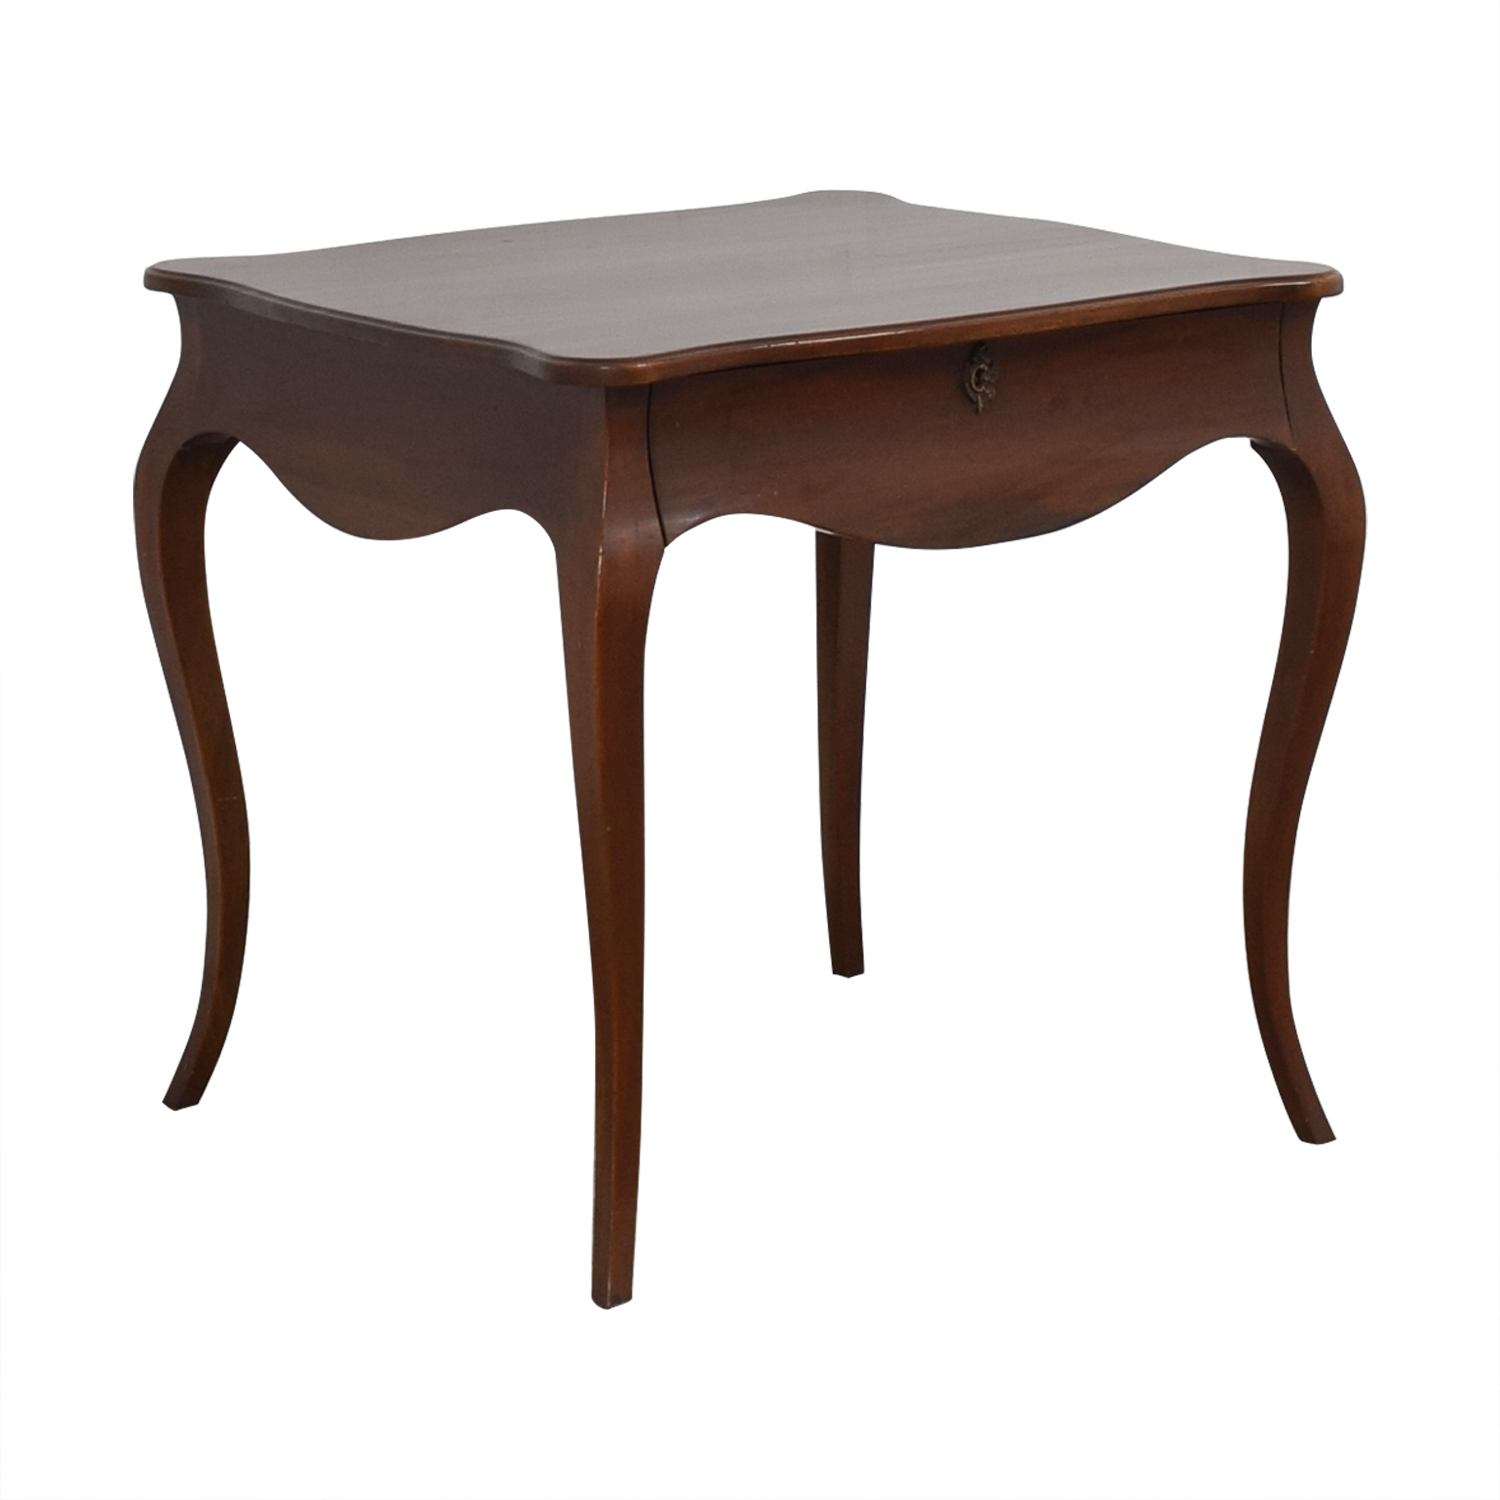 Curved Legs Side Table brown